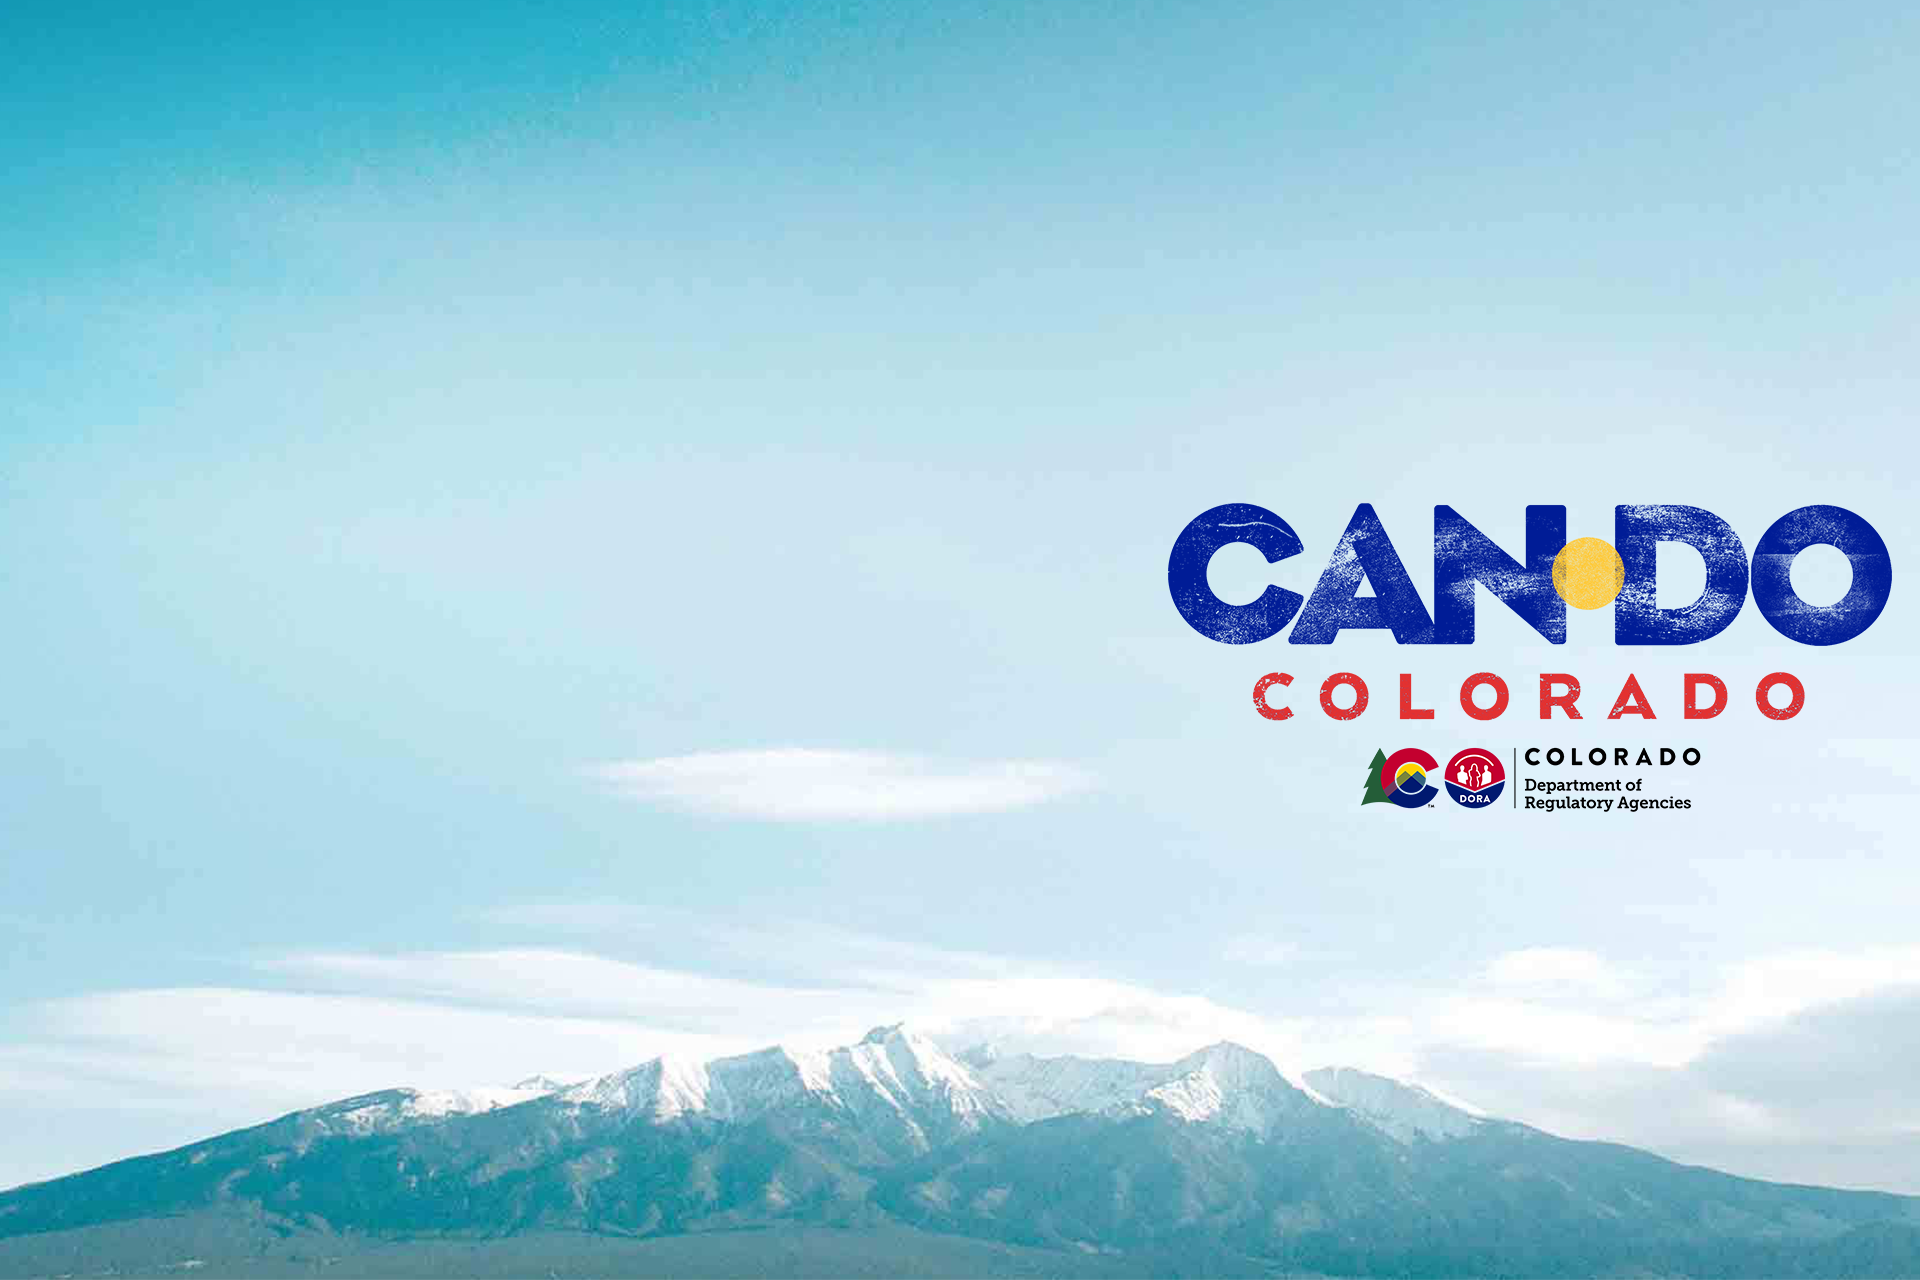 """CAN DO COLORADO"""